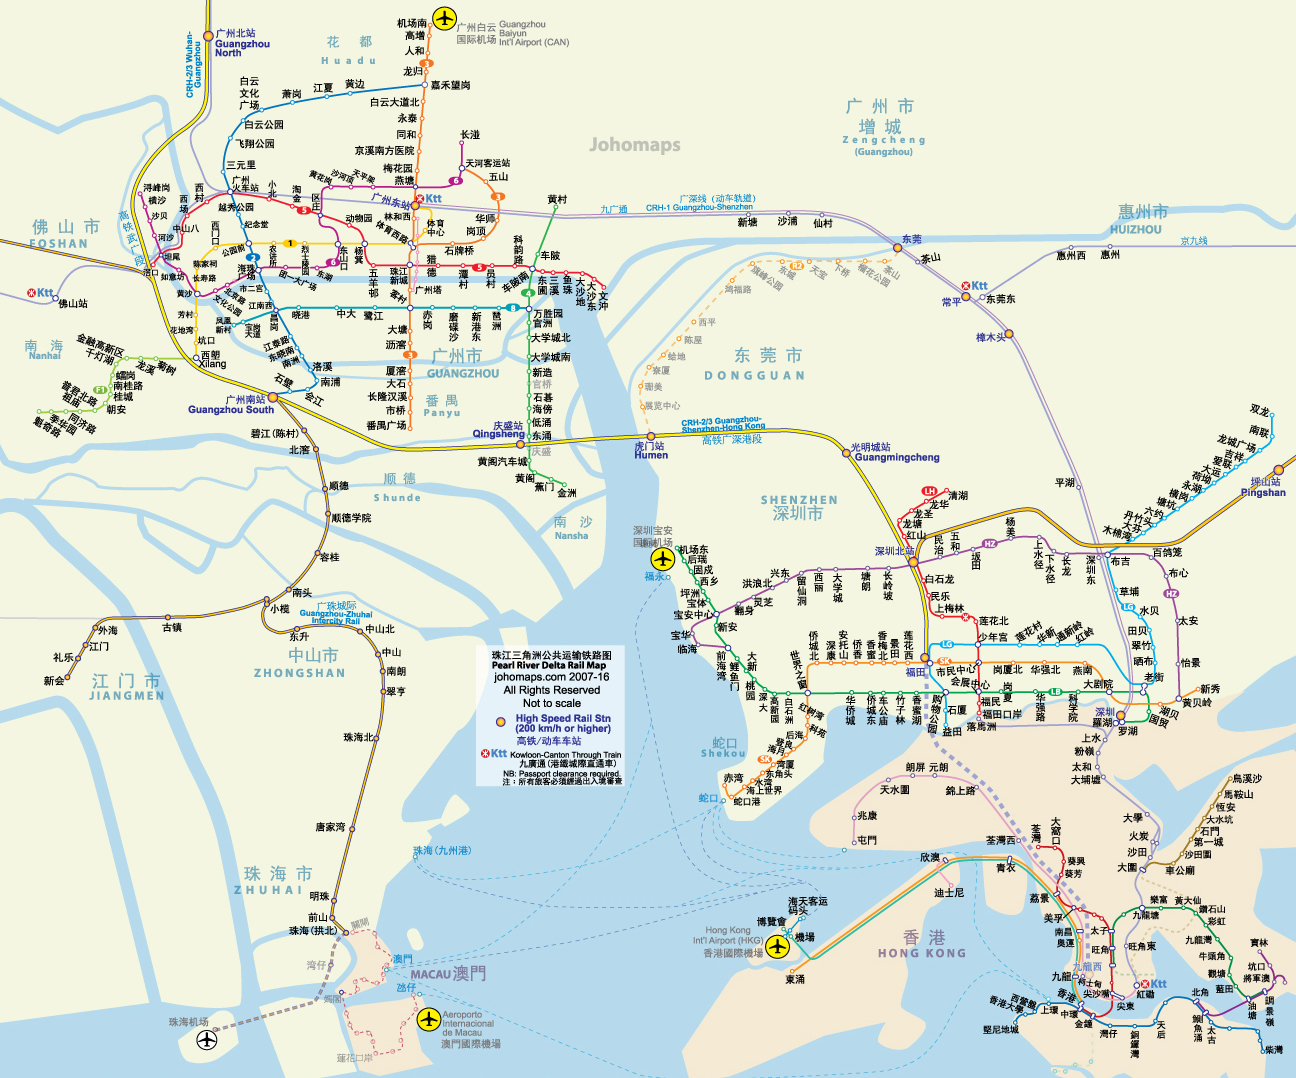 pearl river delta Find and save ideas about pearl river delta on pinterest | see more ideas about pearl river, dragon boat and public space design.